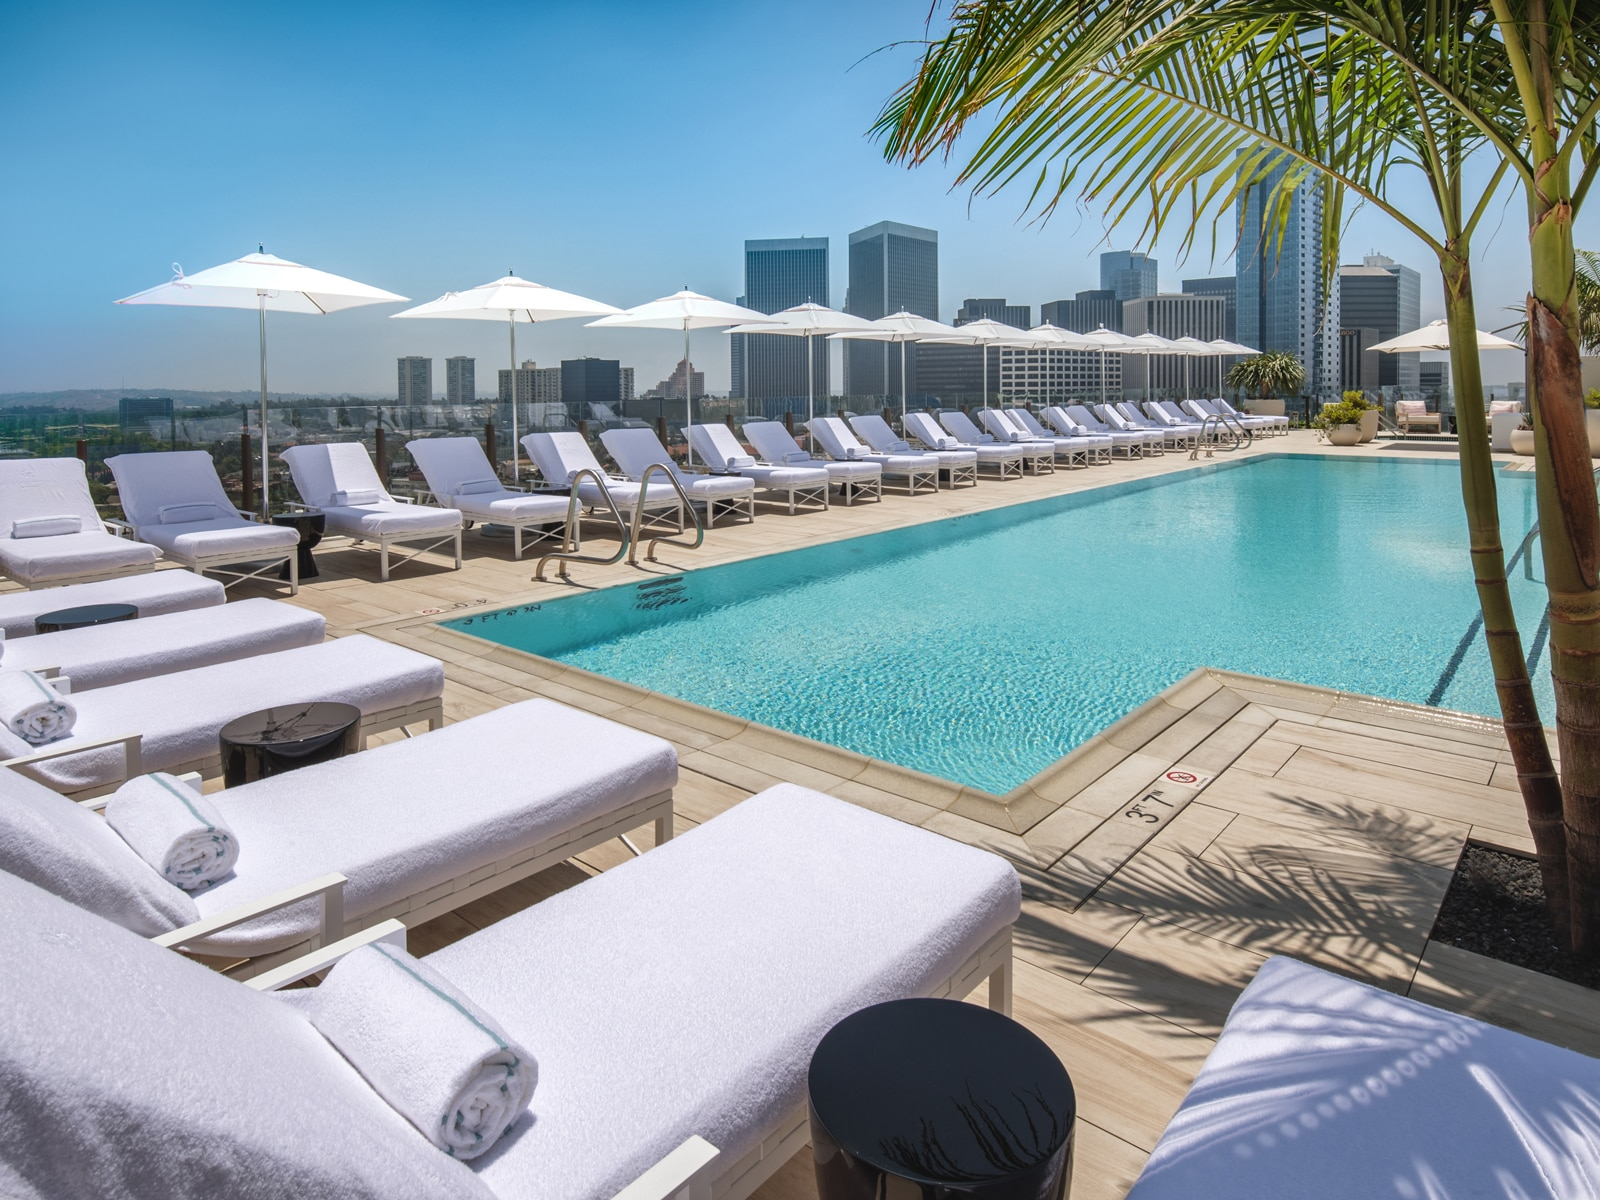 Discount Voucher For Subscription Los Angeles Hotels